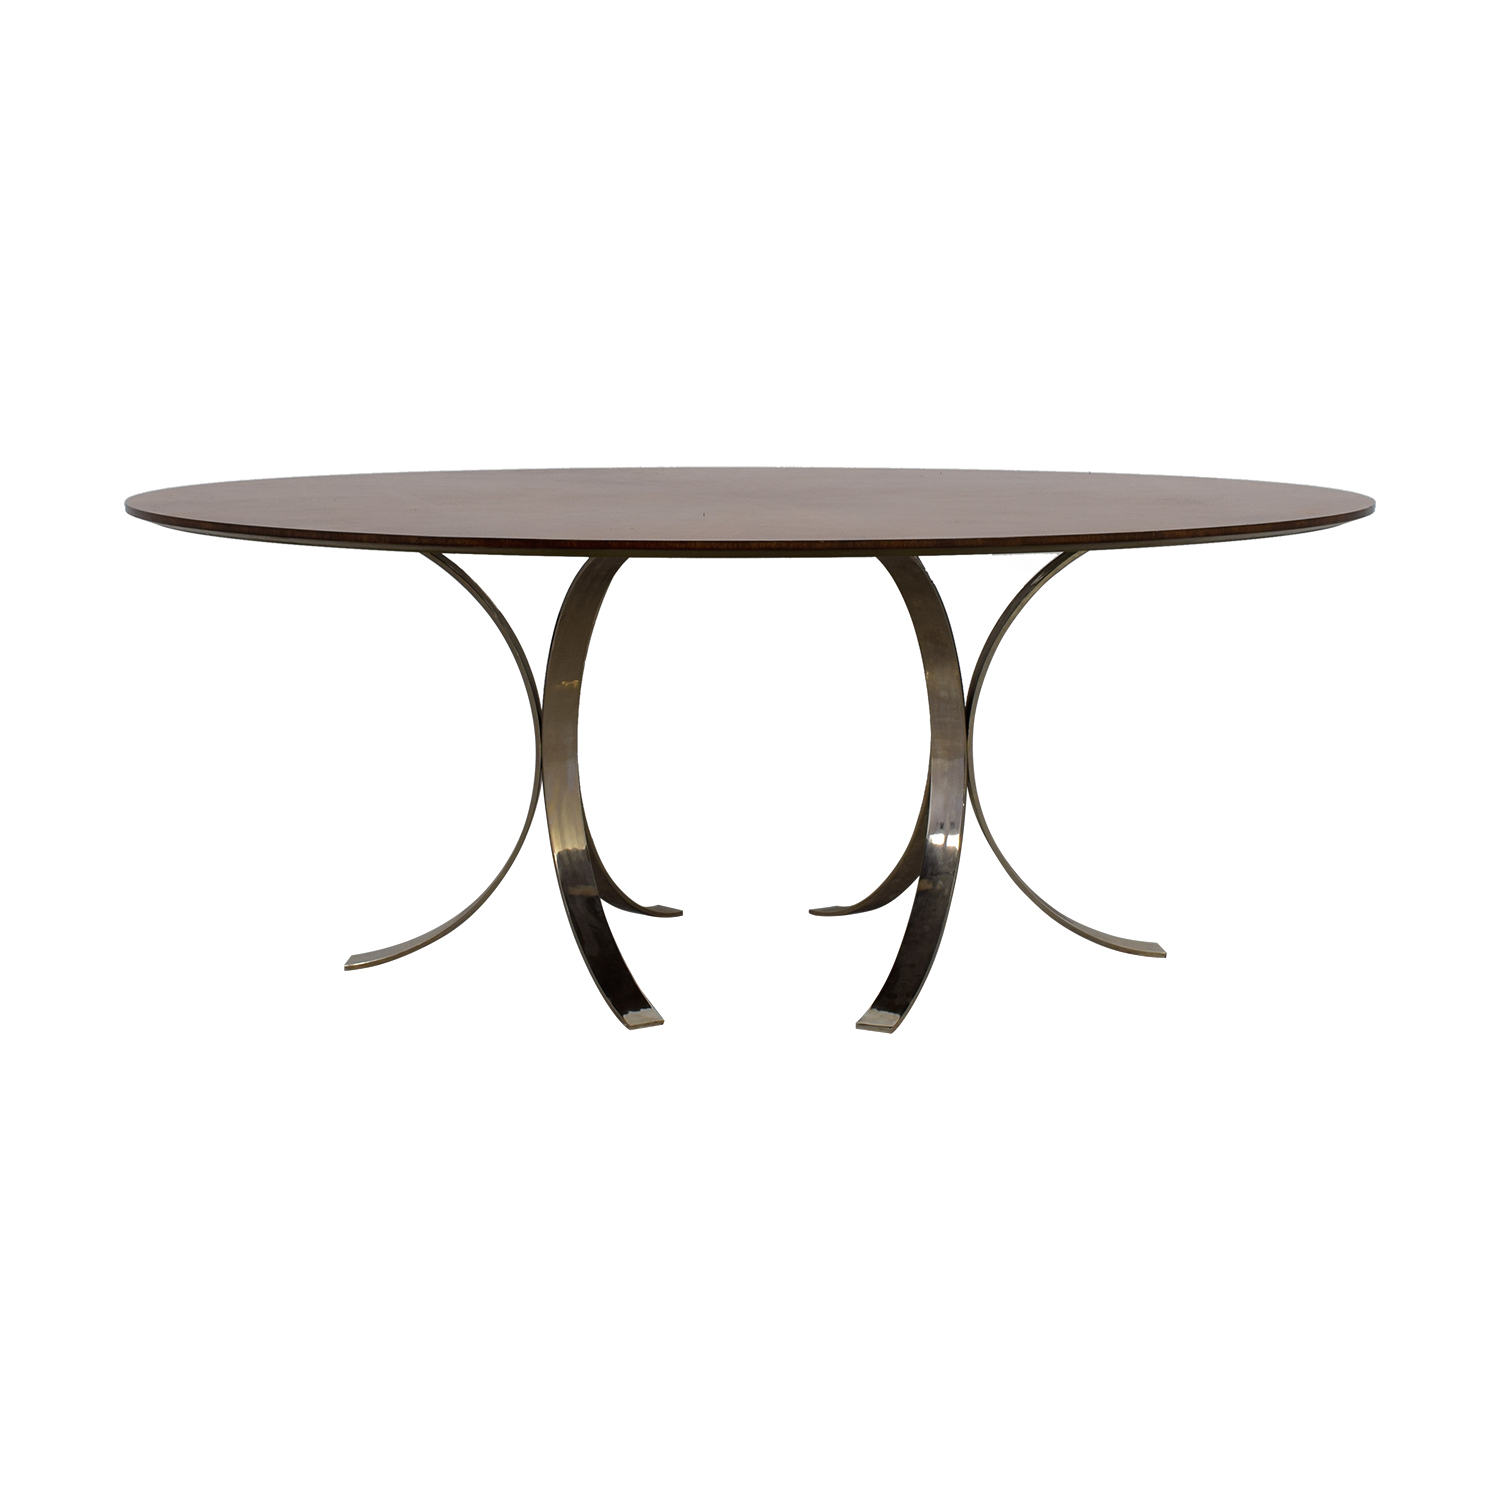 Jonathan Adler Jonathan Adler Oval Wood Table coupon